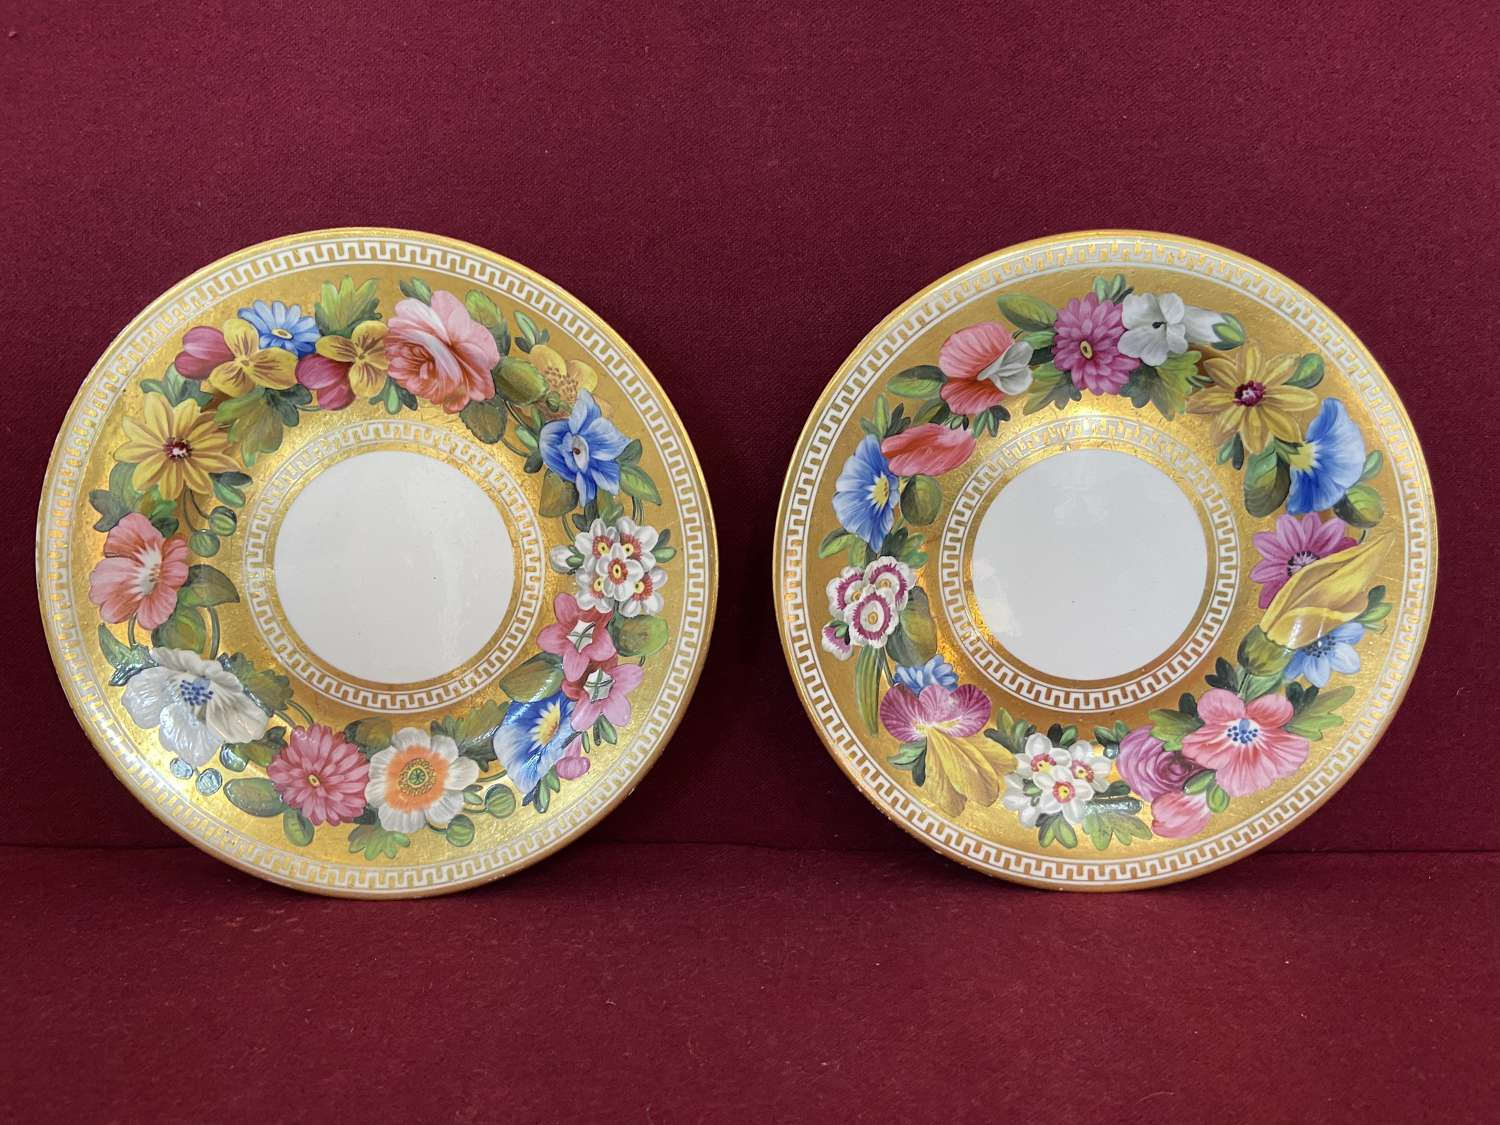 A fine pair of Spode Tea Plates c.1815 decorated in pattern 2049